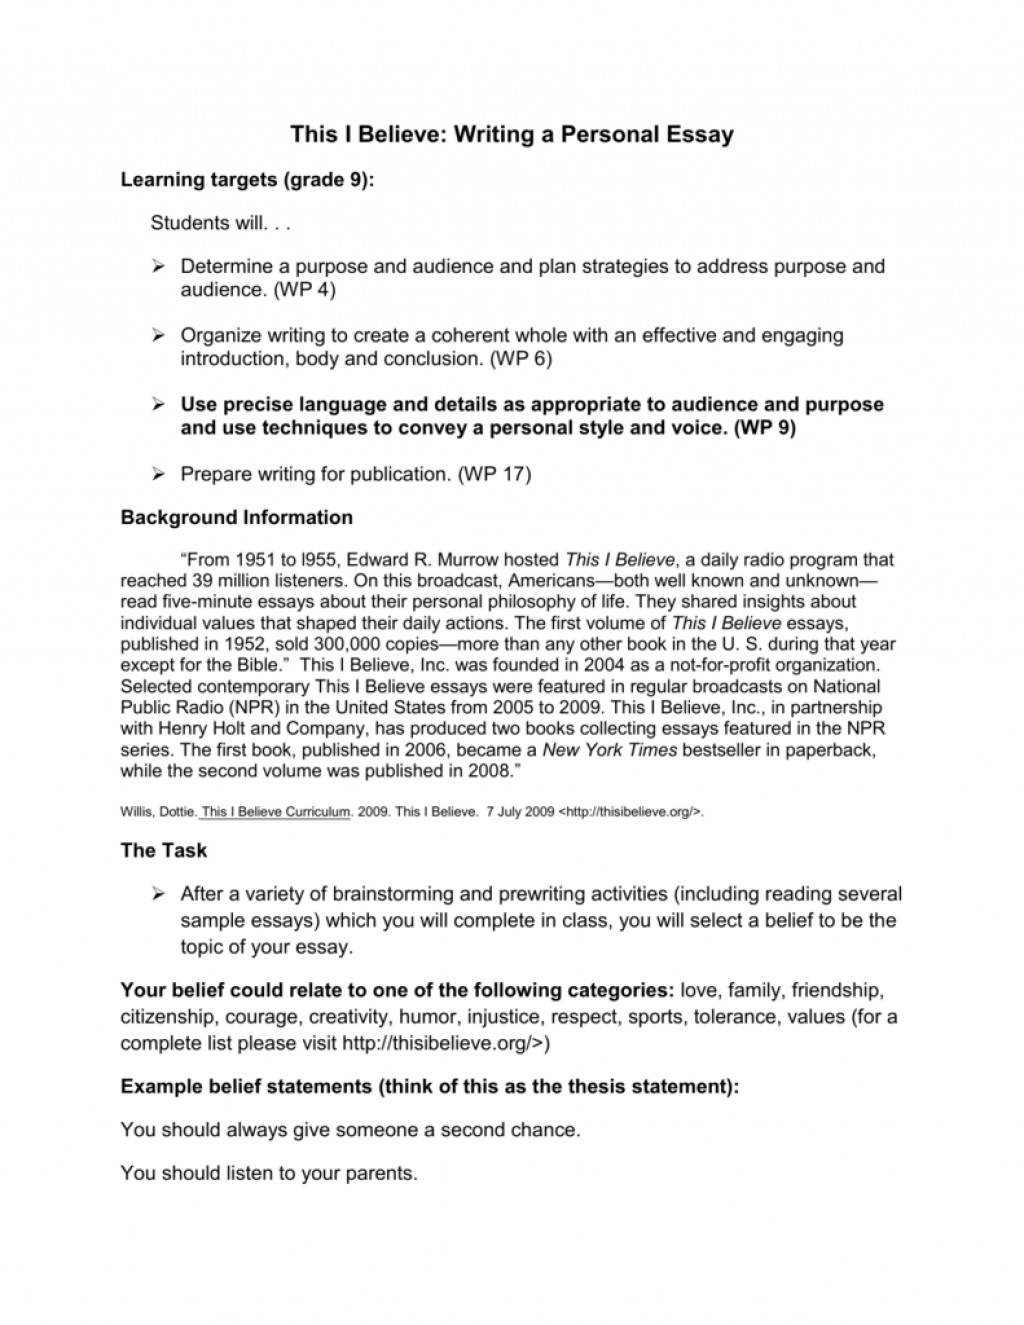 002 Essay Example 006750112 1 I Impressive Believe Topic Ideas This Examples College Large